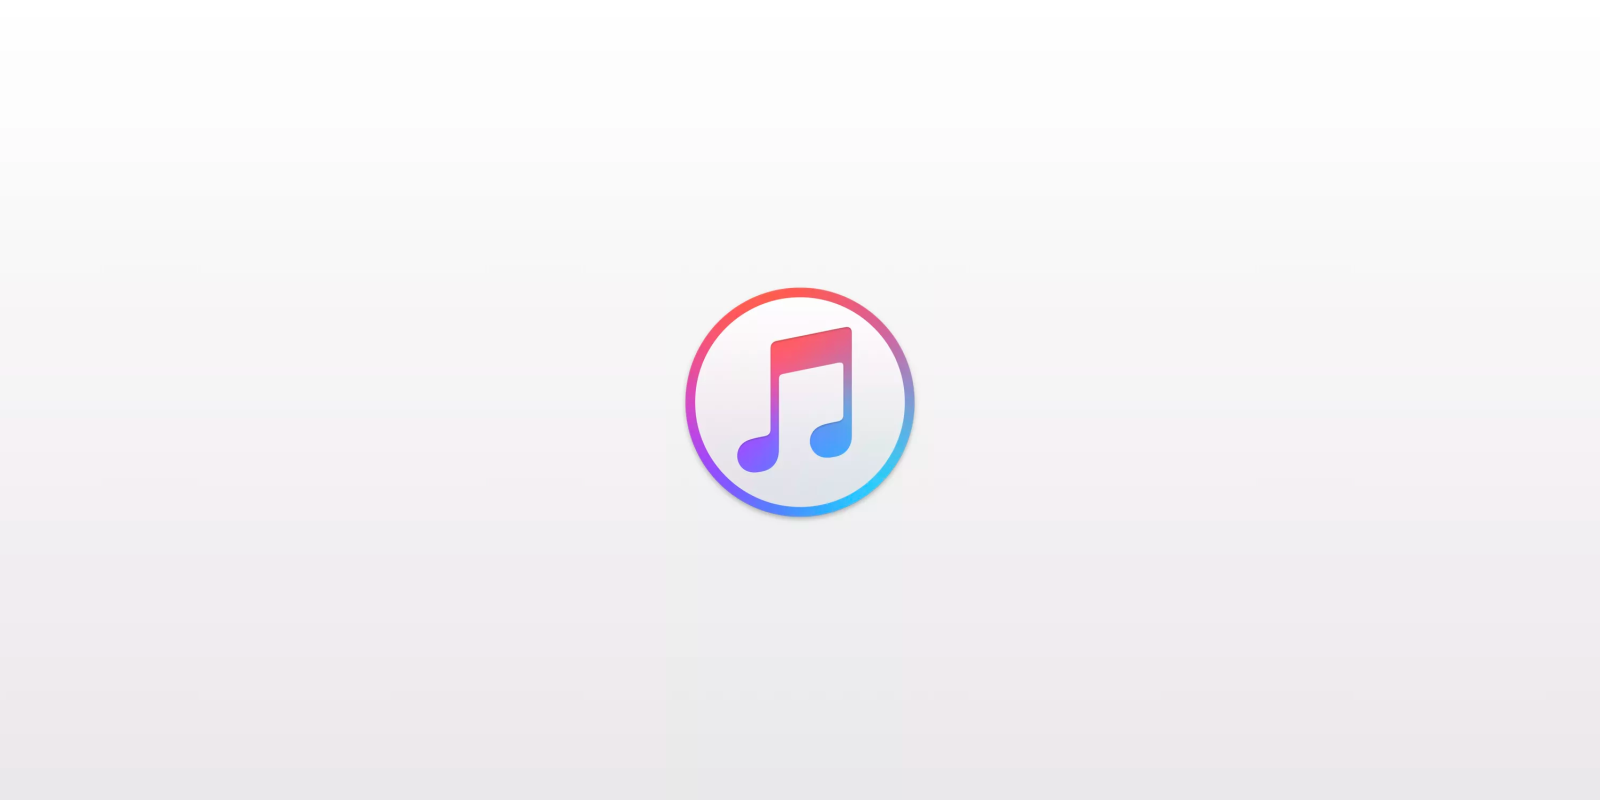 New macOS 10 15 Music app code based on iTunes, not iOS - 9to5Mac